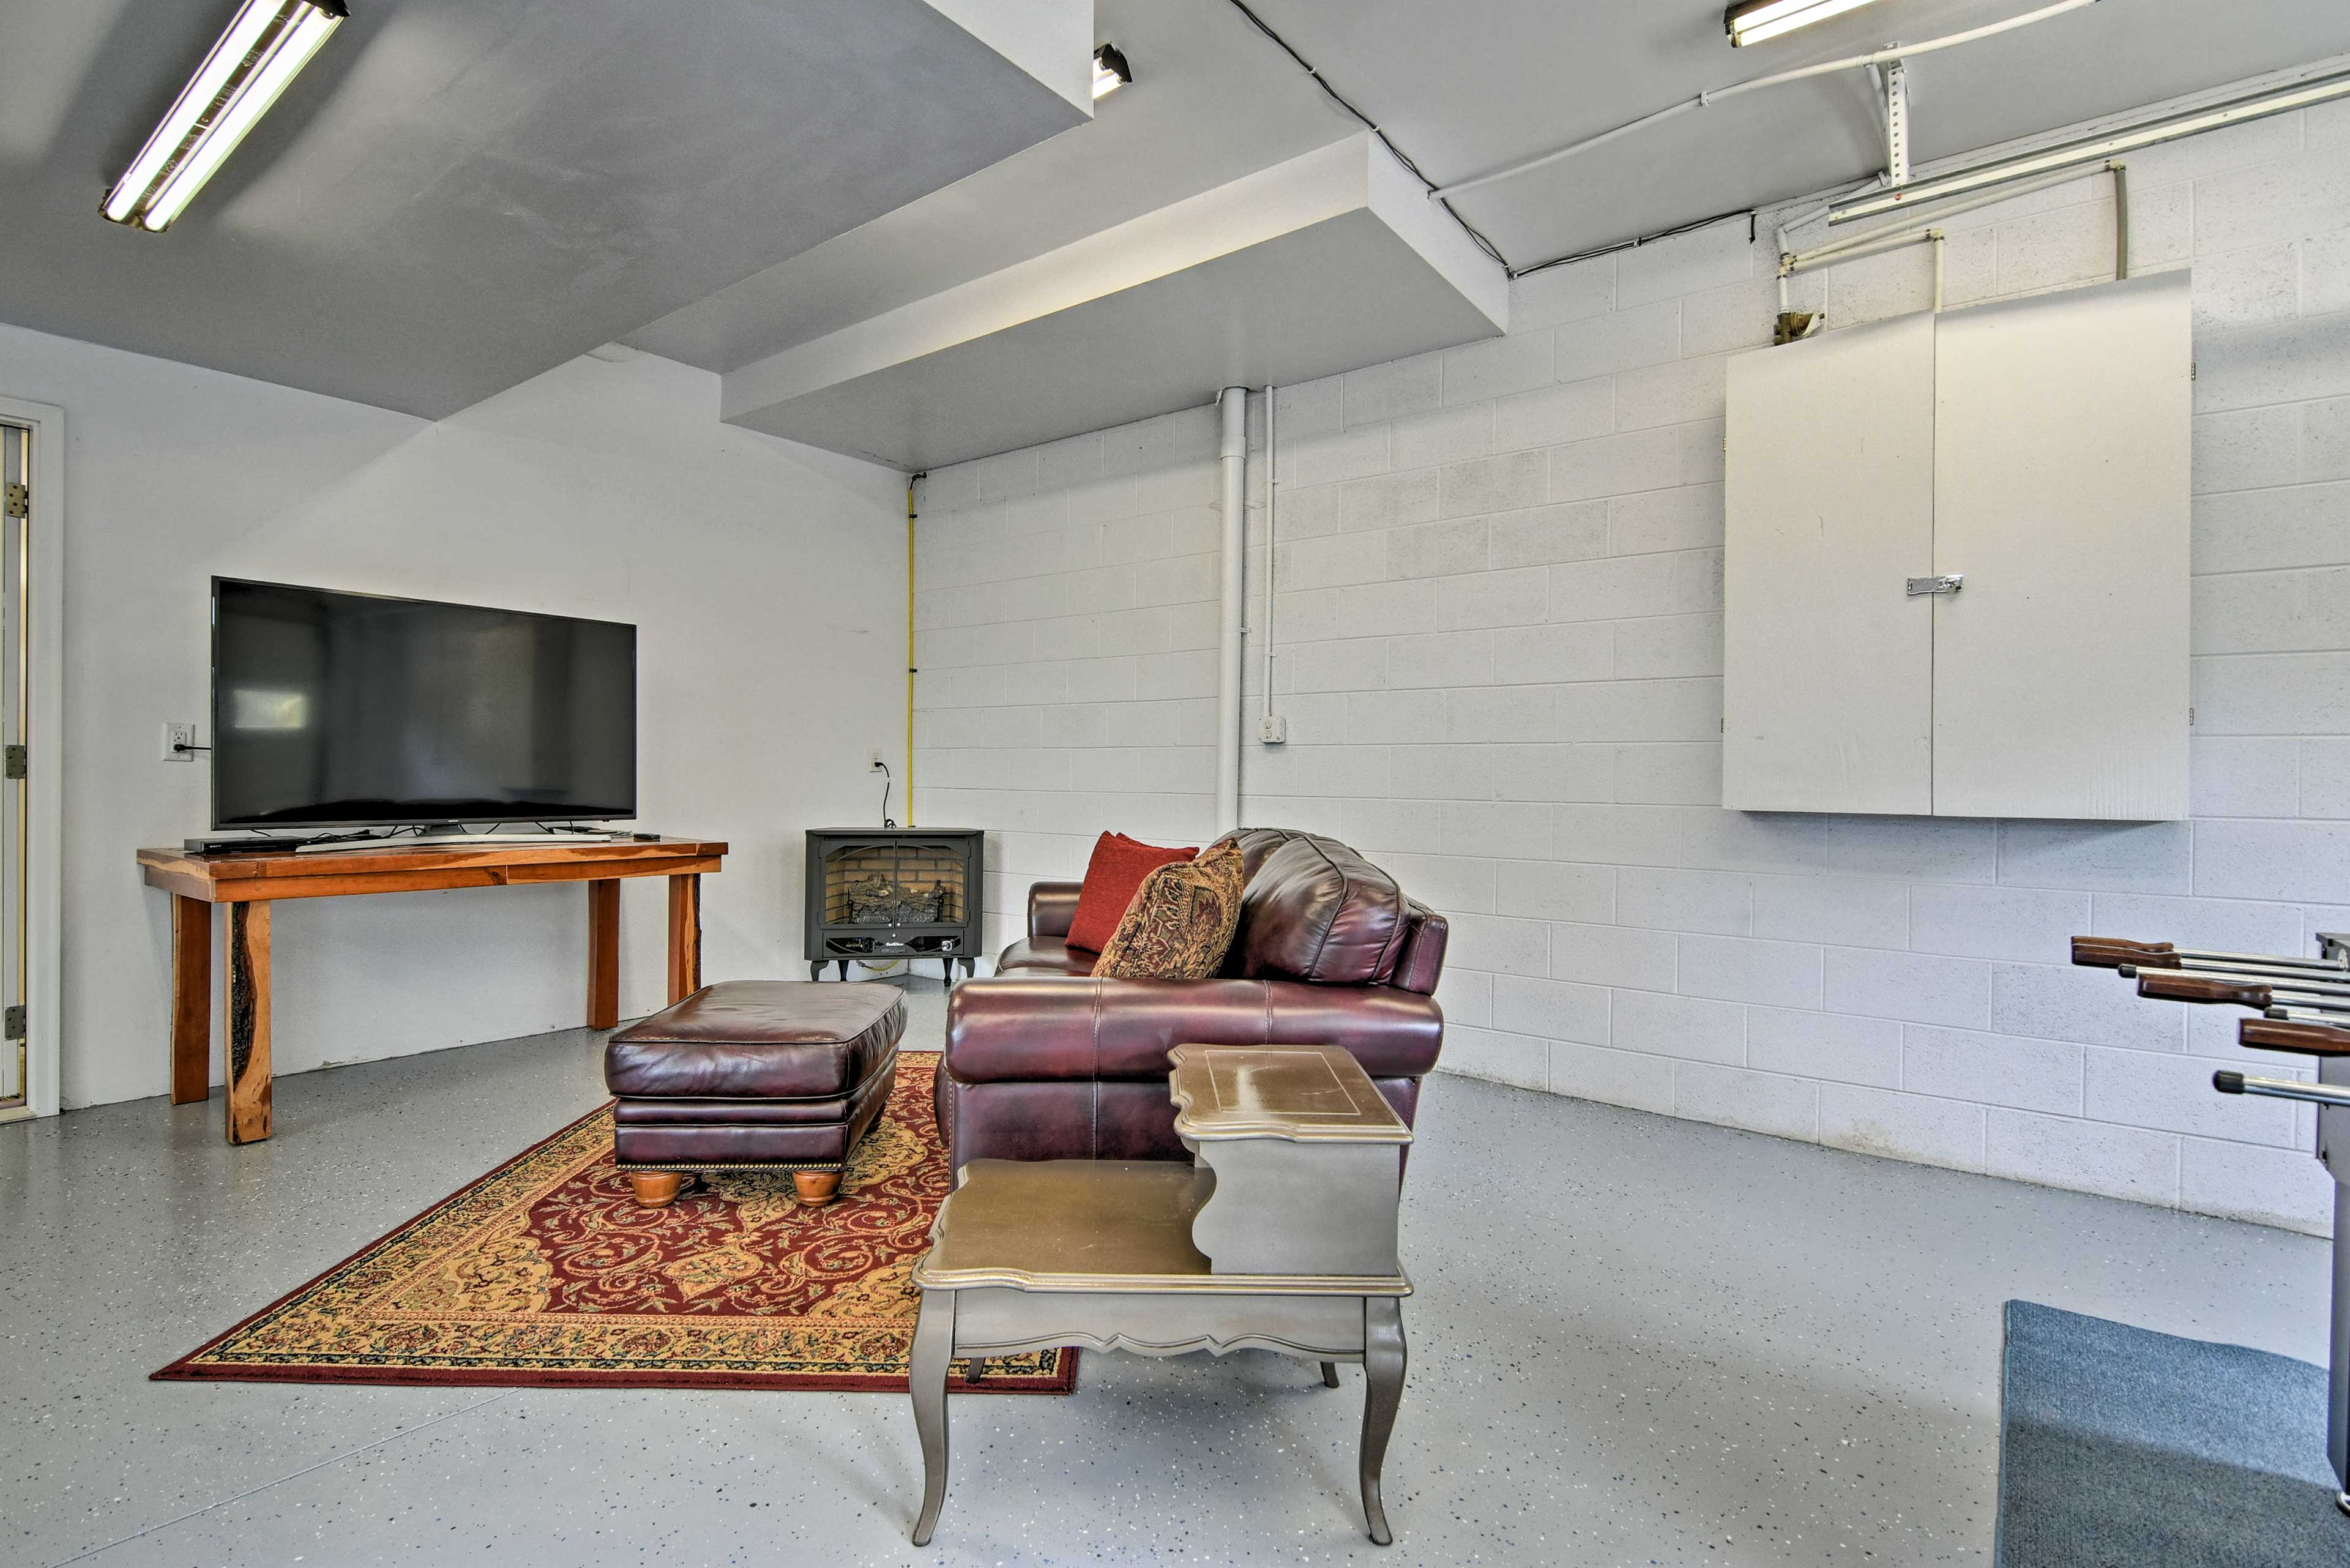 Host evening festivities in this garage-converted game room!